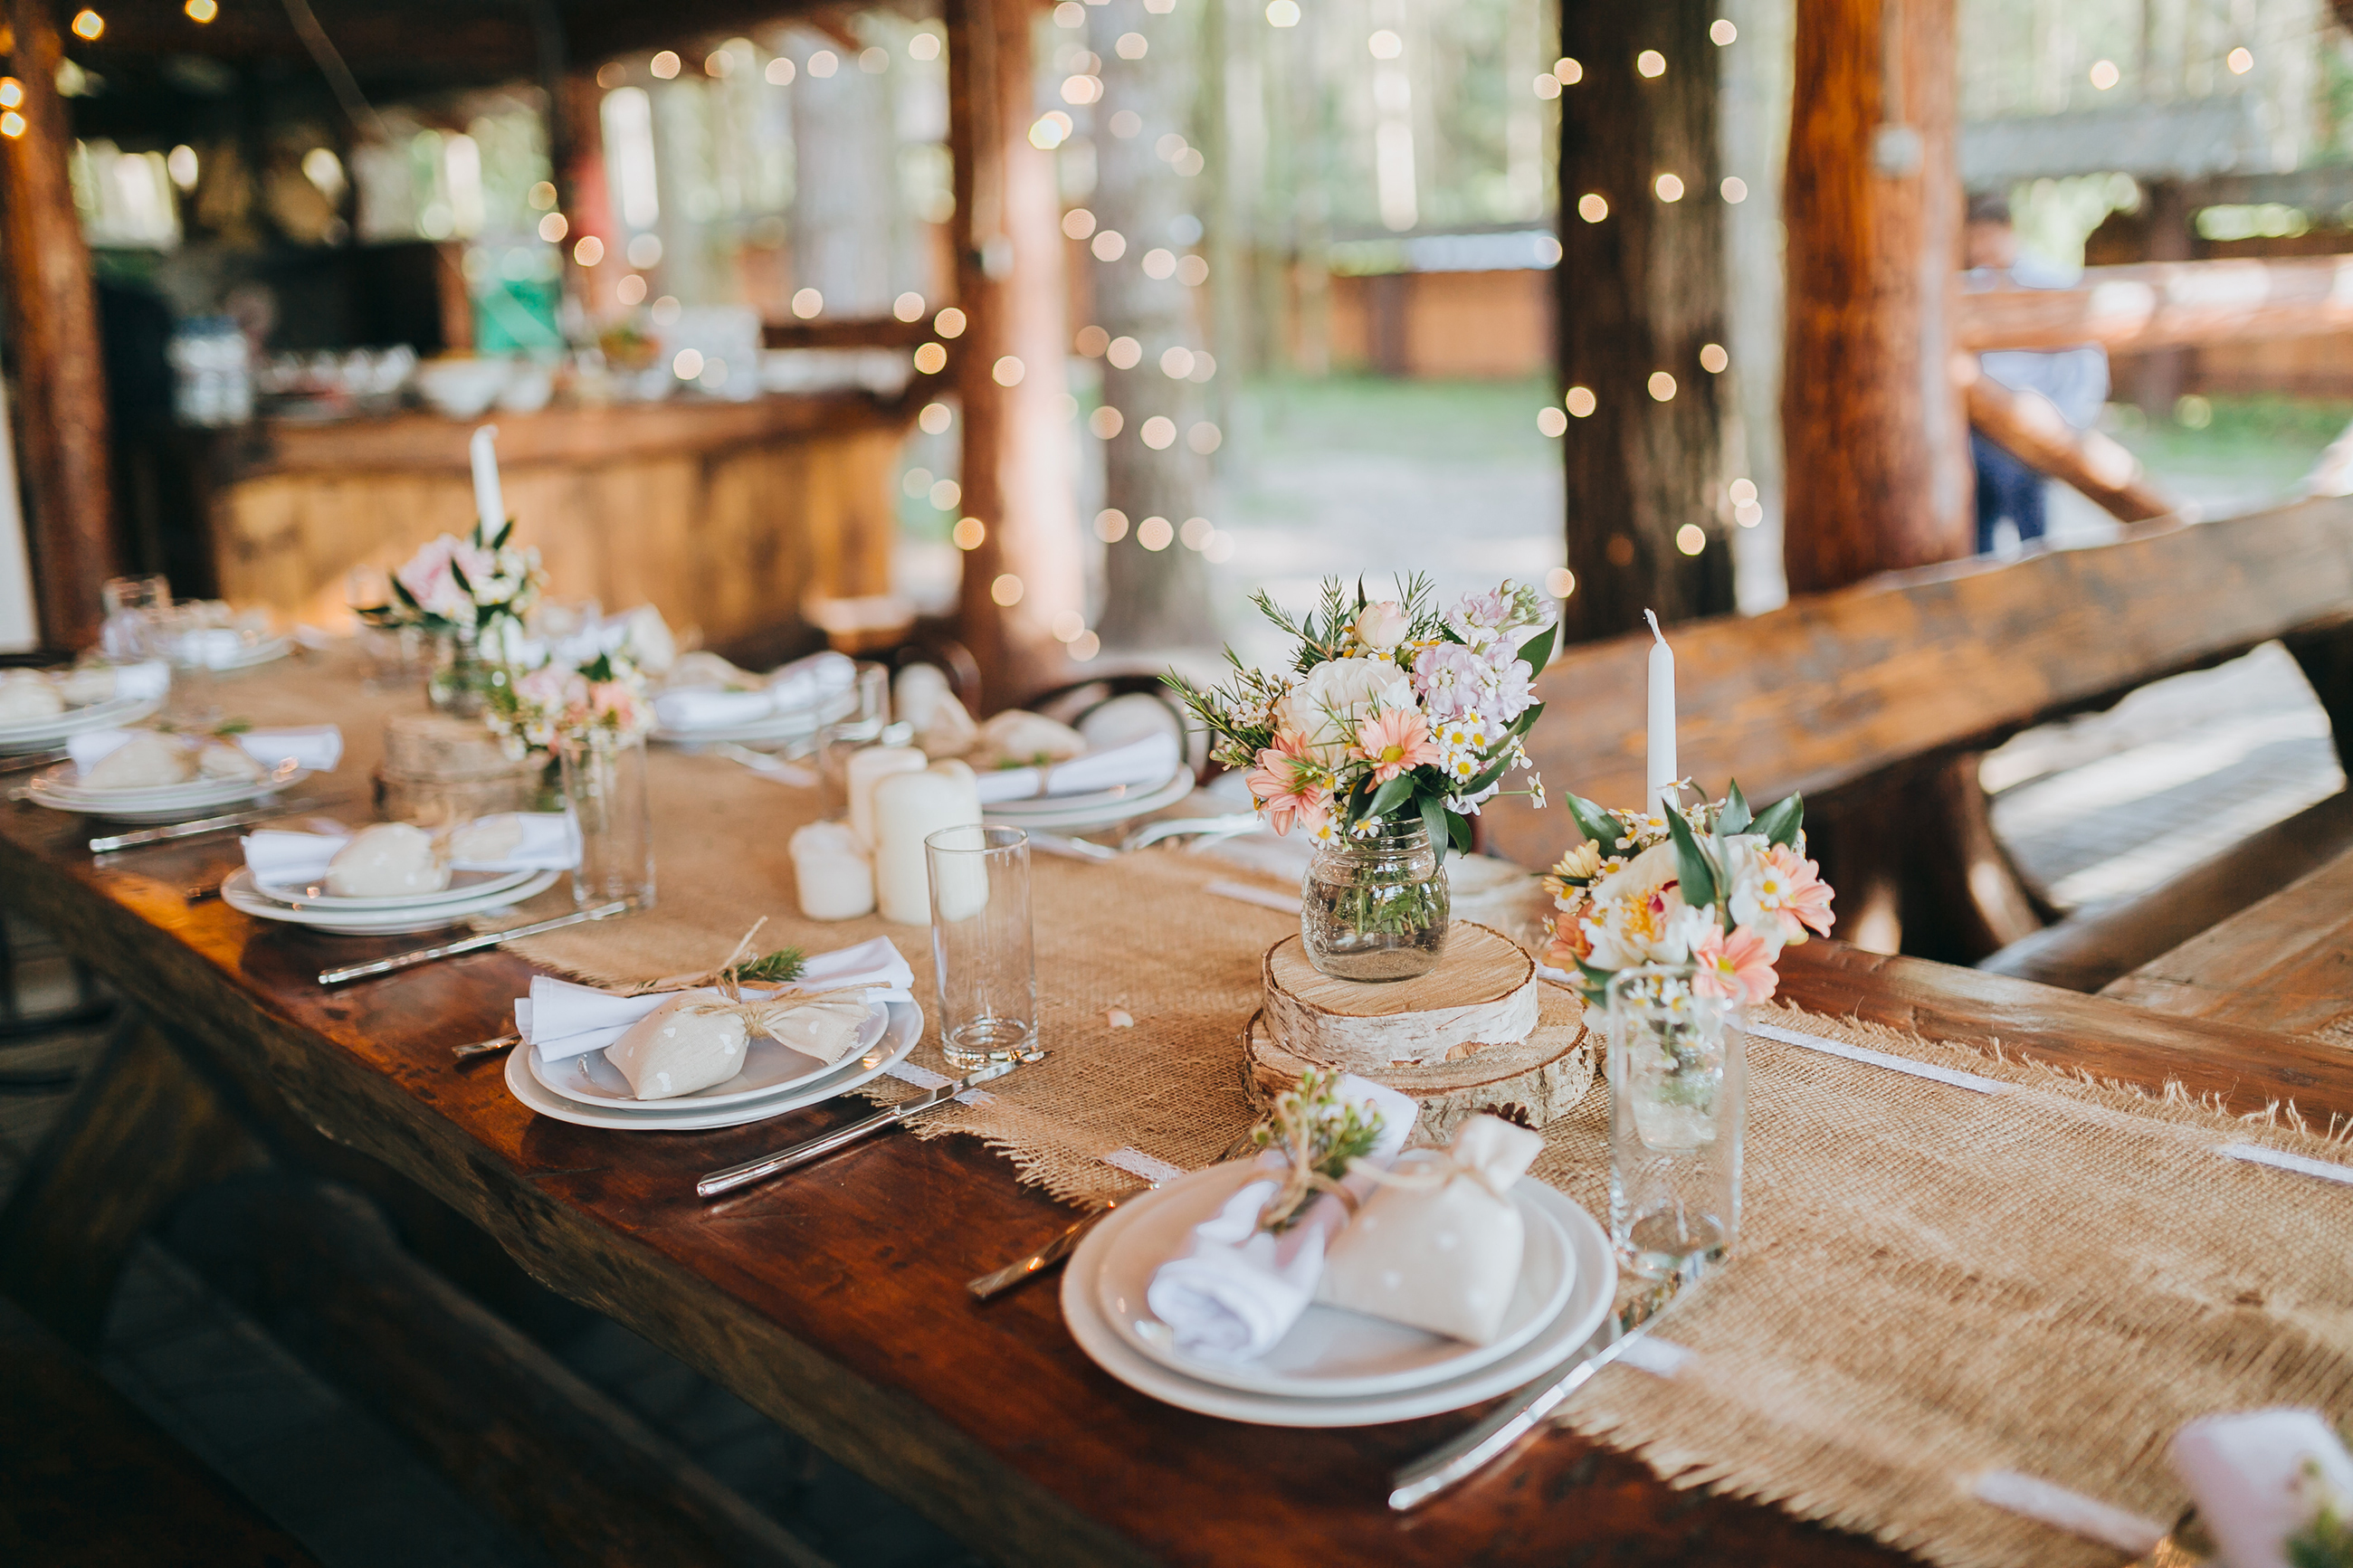 5d607dbeb3df495bb73d914e983cfda7 - 31 Smart and Easy Ways To Save Money On Your Wedding Without Cutting the Guest List